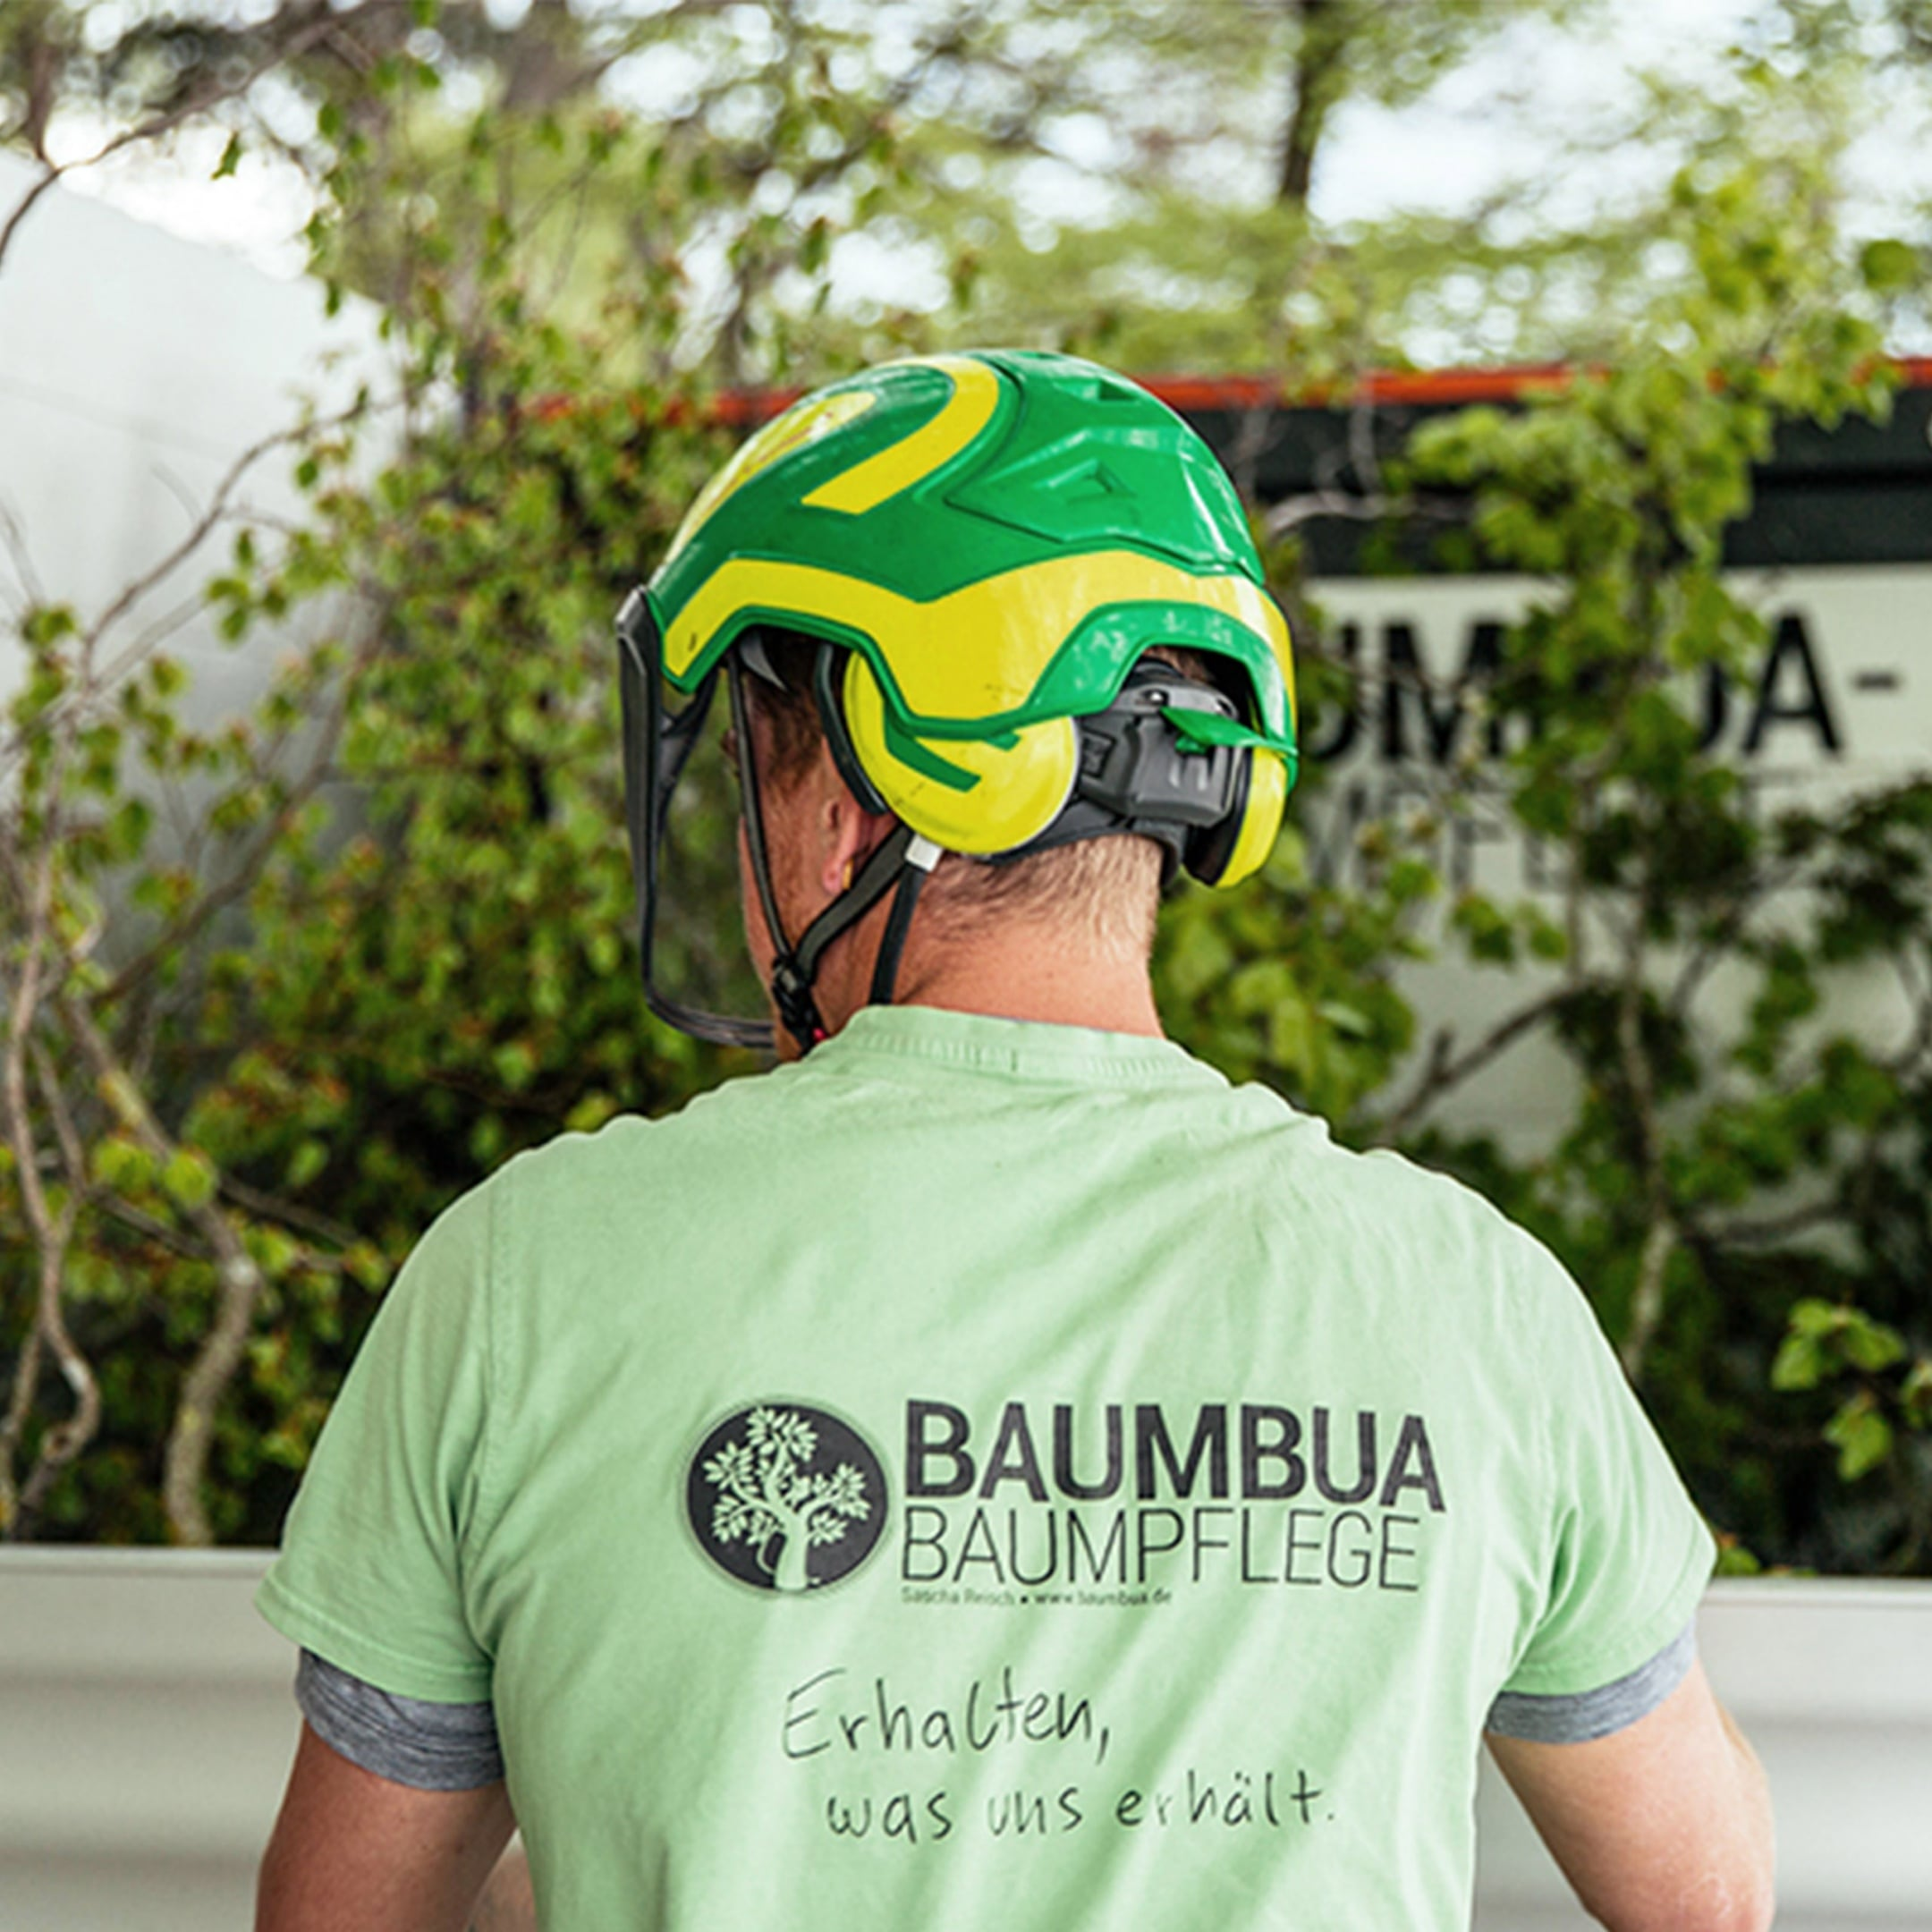 A man wearing a helmet and a T-shirt with the Baumbua logo printed on the back